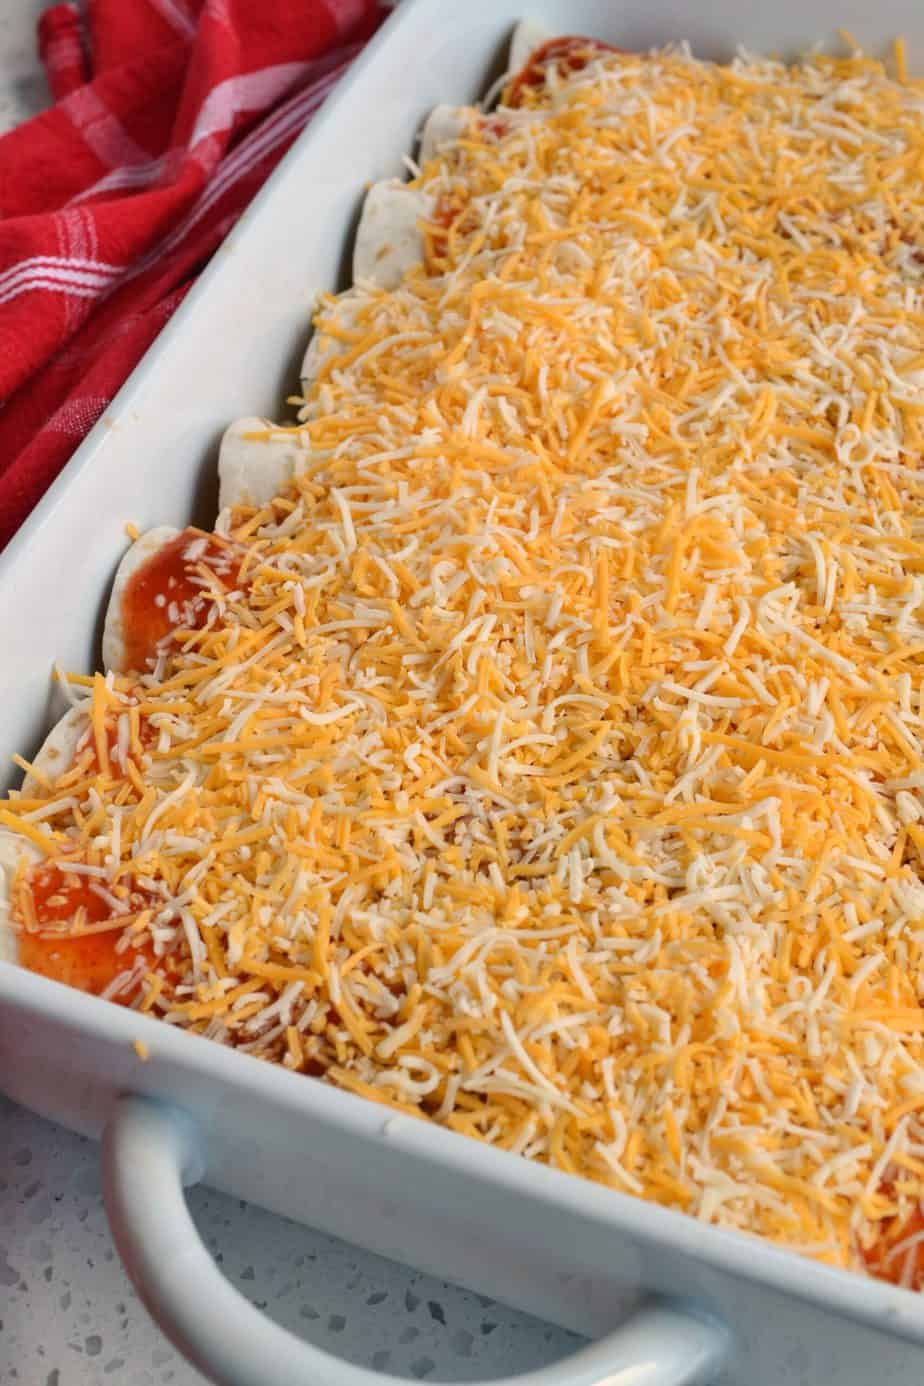 Fun and flavorful Tex Mex Chicken Enchiladas made with homemade enchilada sauce and already baked rotisserie chicken.